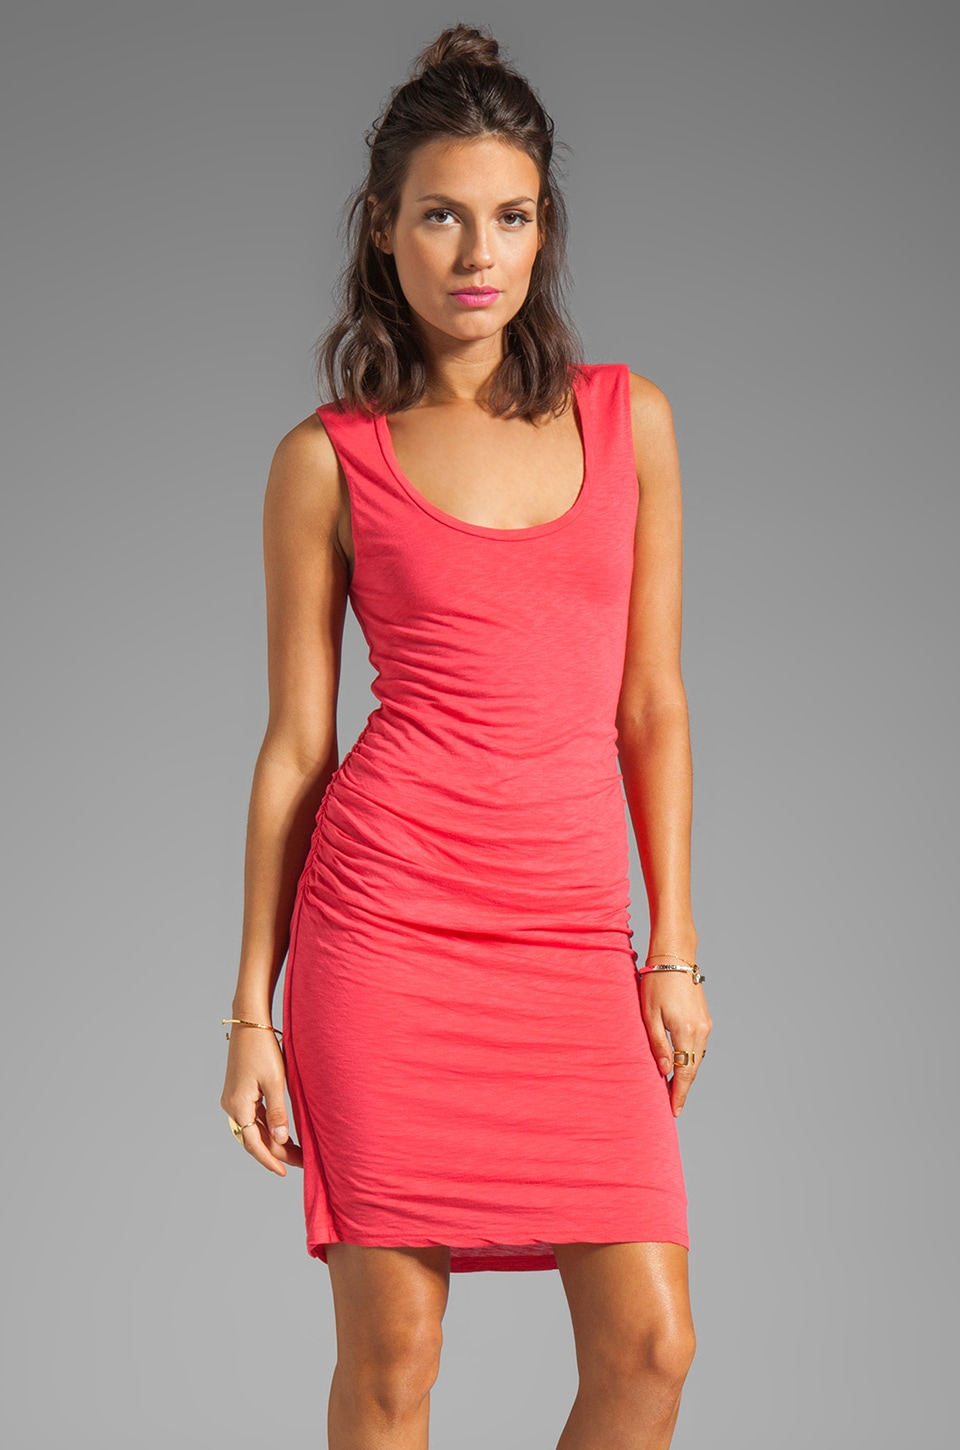 Velvet by Graham & Spencer Eliana Luxe Slub Dress in Carmine